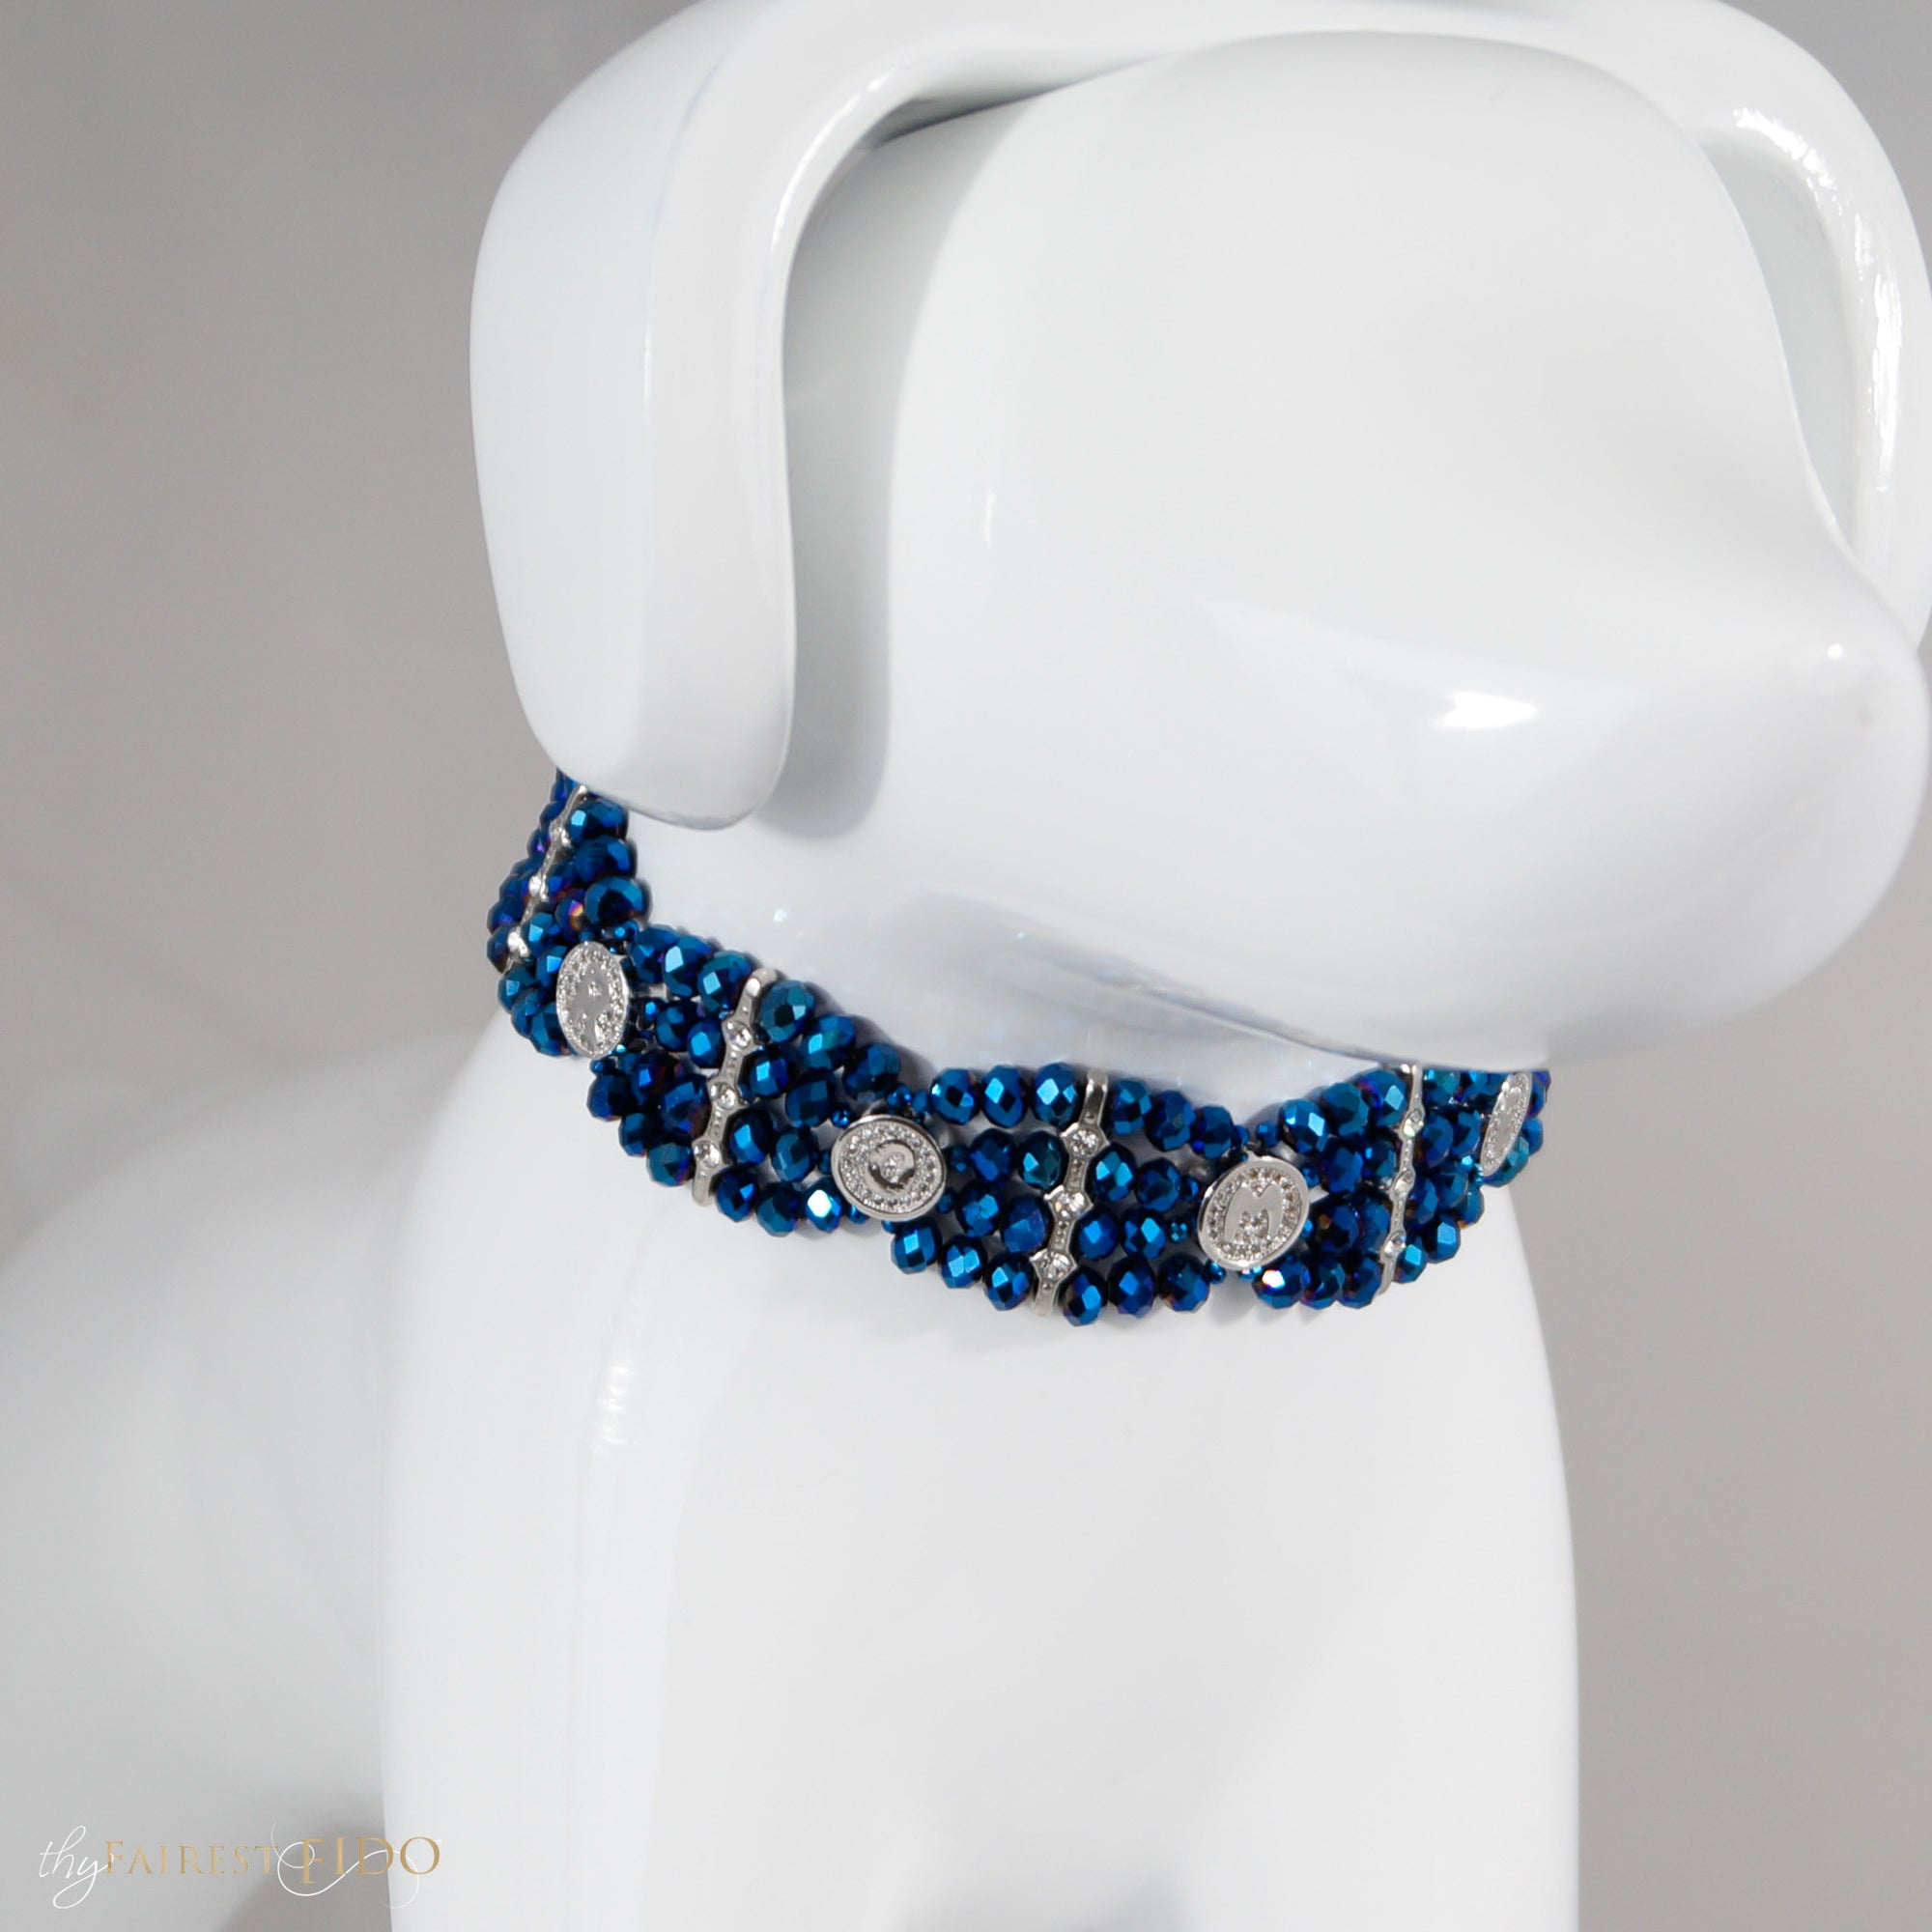 Four rows of Blue crystal woven highlighted with rhinestone spacer bars and round micro pave cubic zirconia silver letters to personalize with dogs name size 0/1